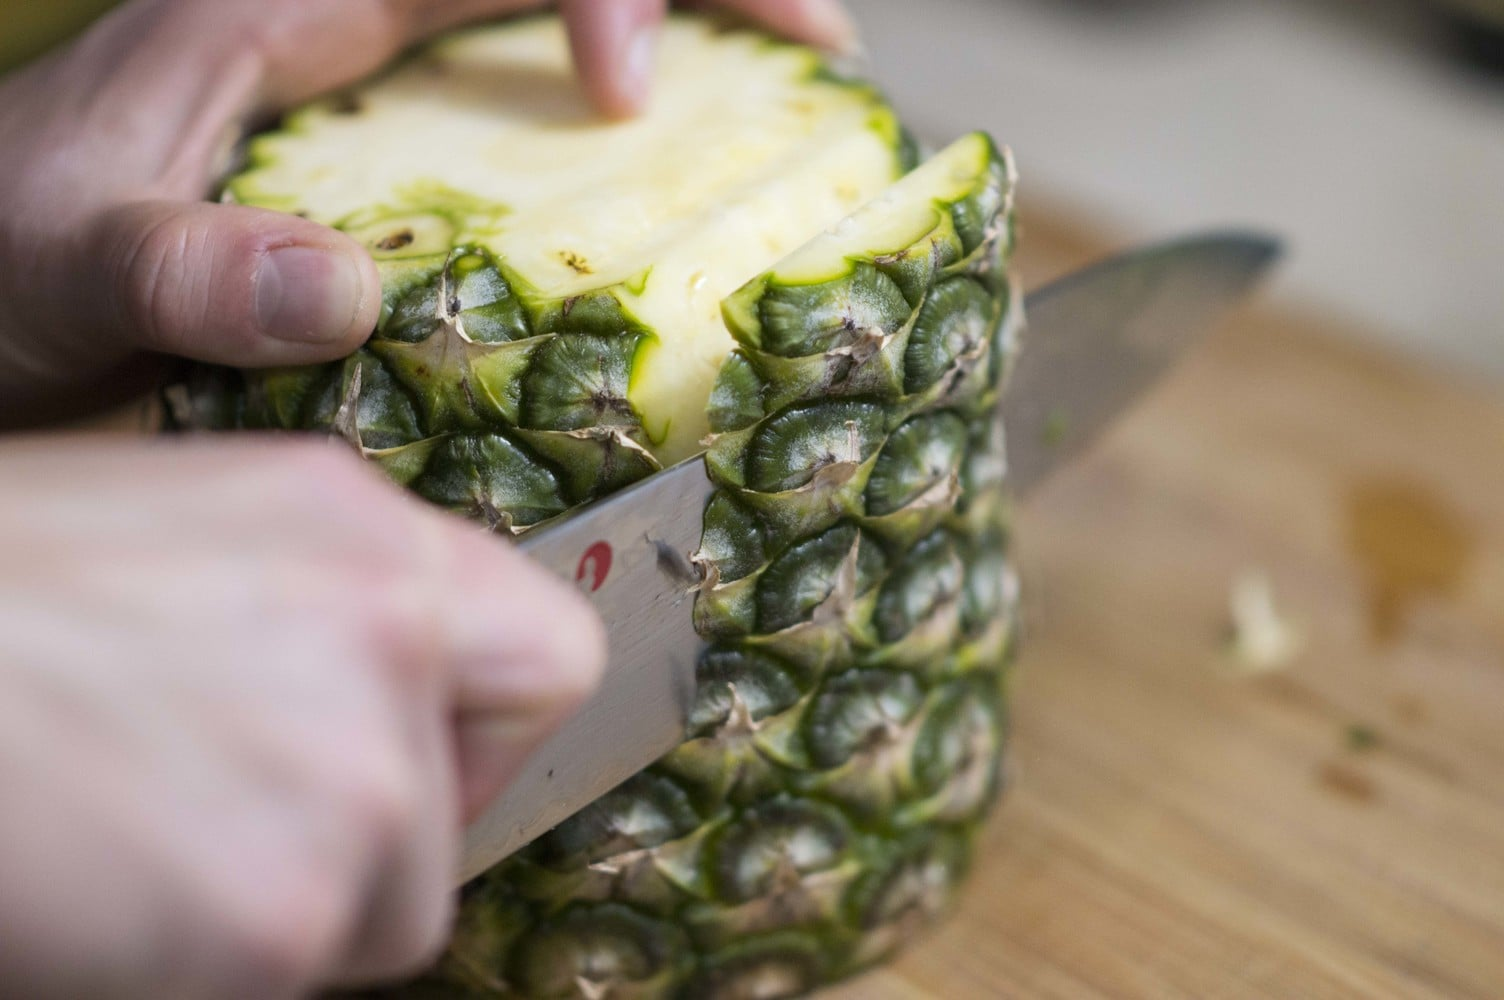 how to cut an pinapple